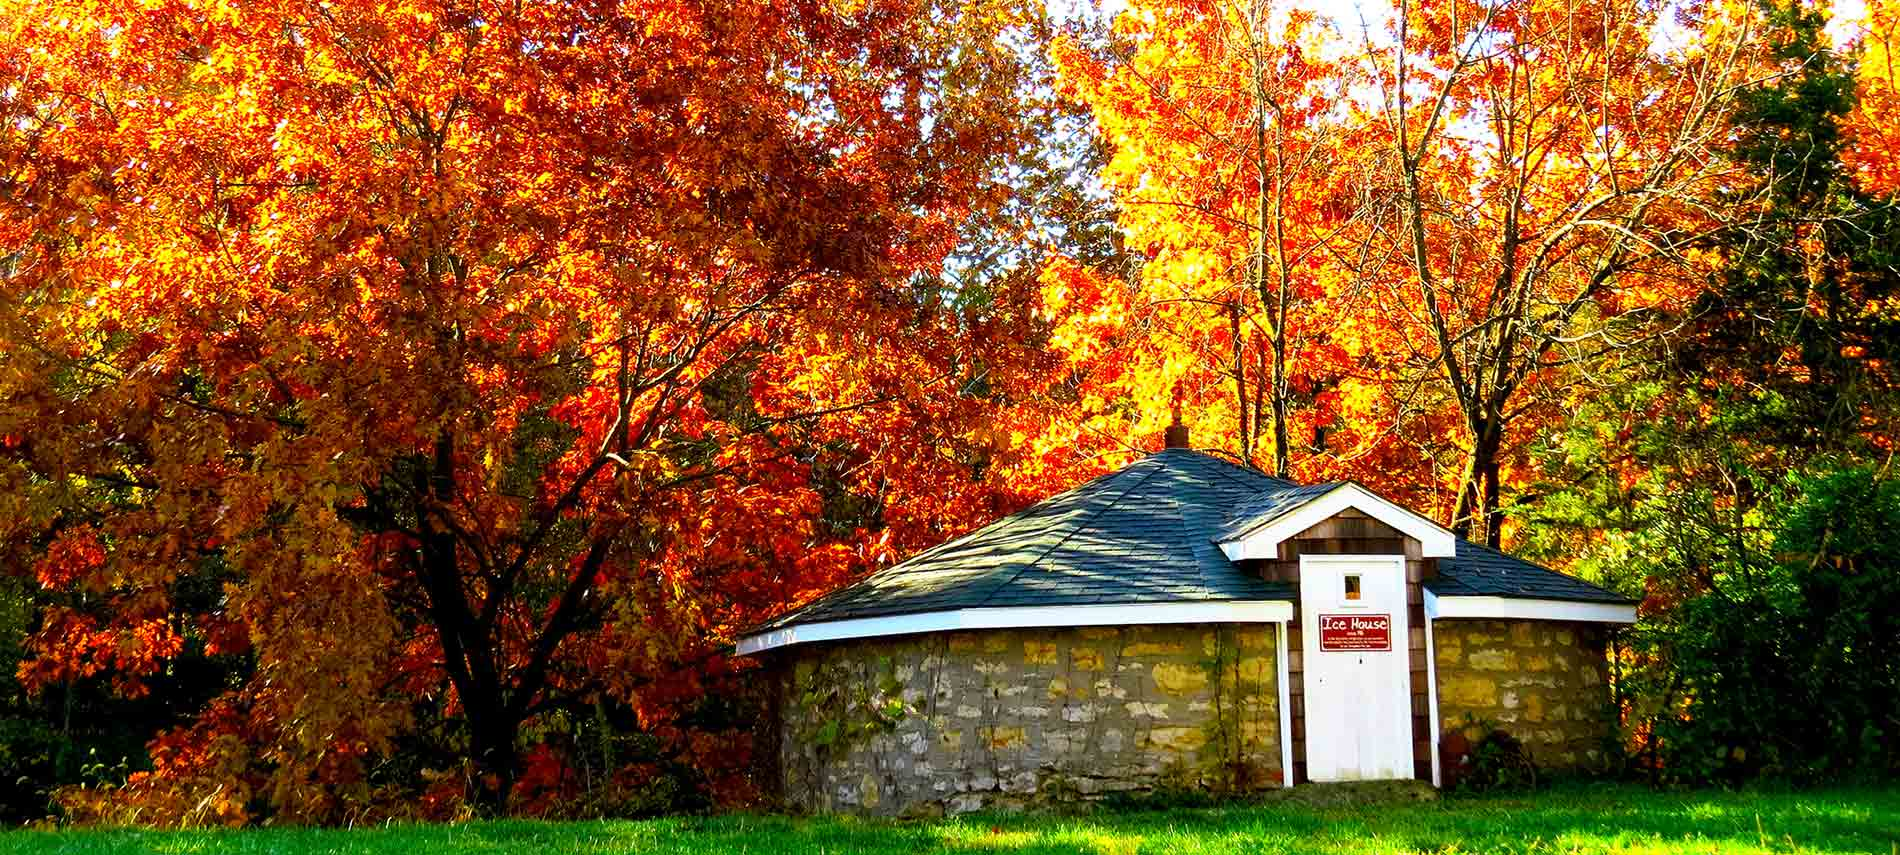 Fall leaves in their oranges and reds abound in this view of the old cyndrilical ice house.